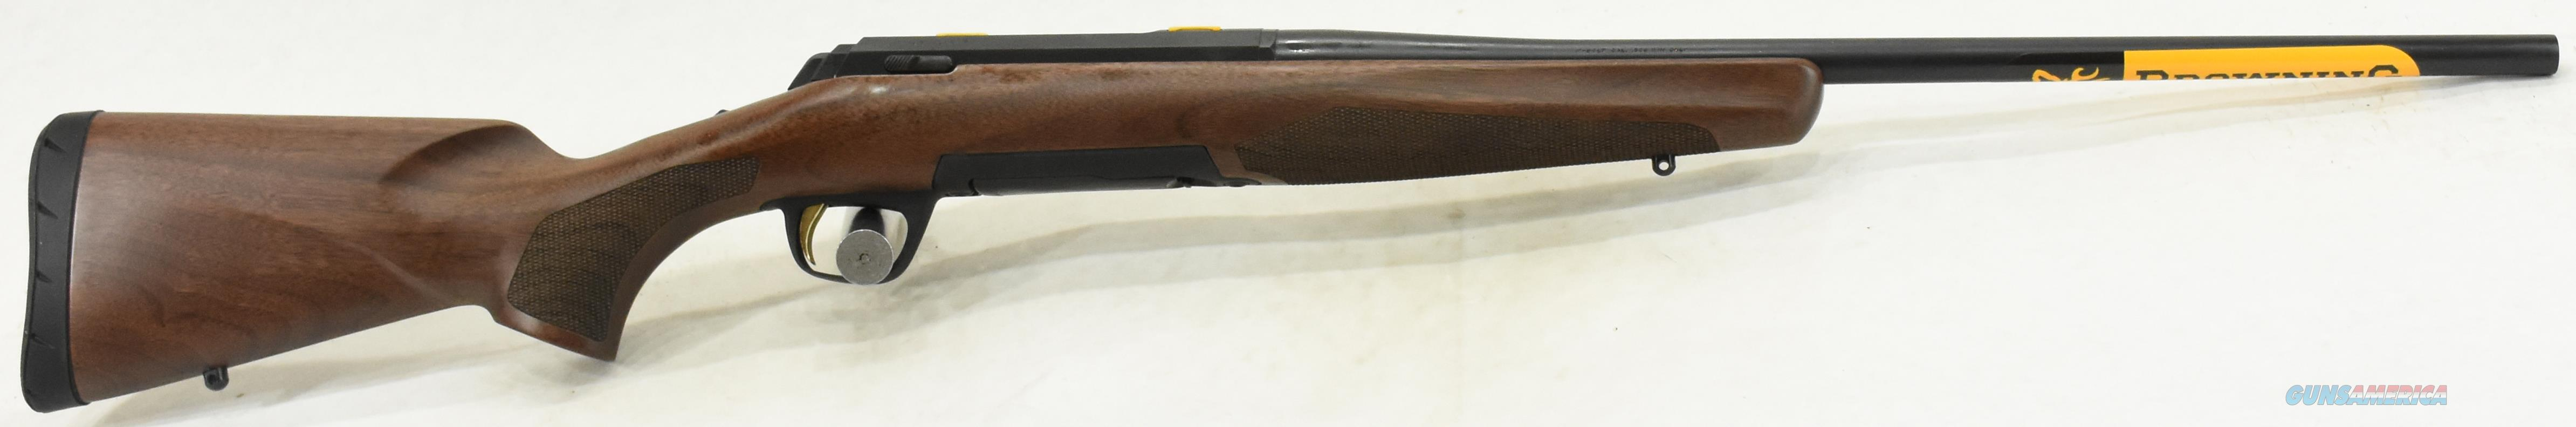 Xbolt Micro Midas Walnut LH 308Win 20In 035279218  Guns > Rifles > Browning Rifles > Bolt Action > Hunting > Blue